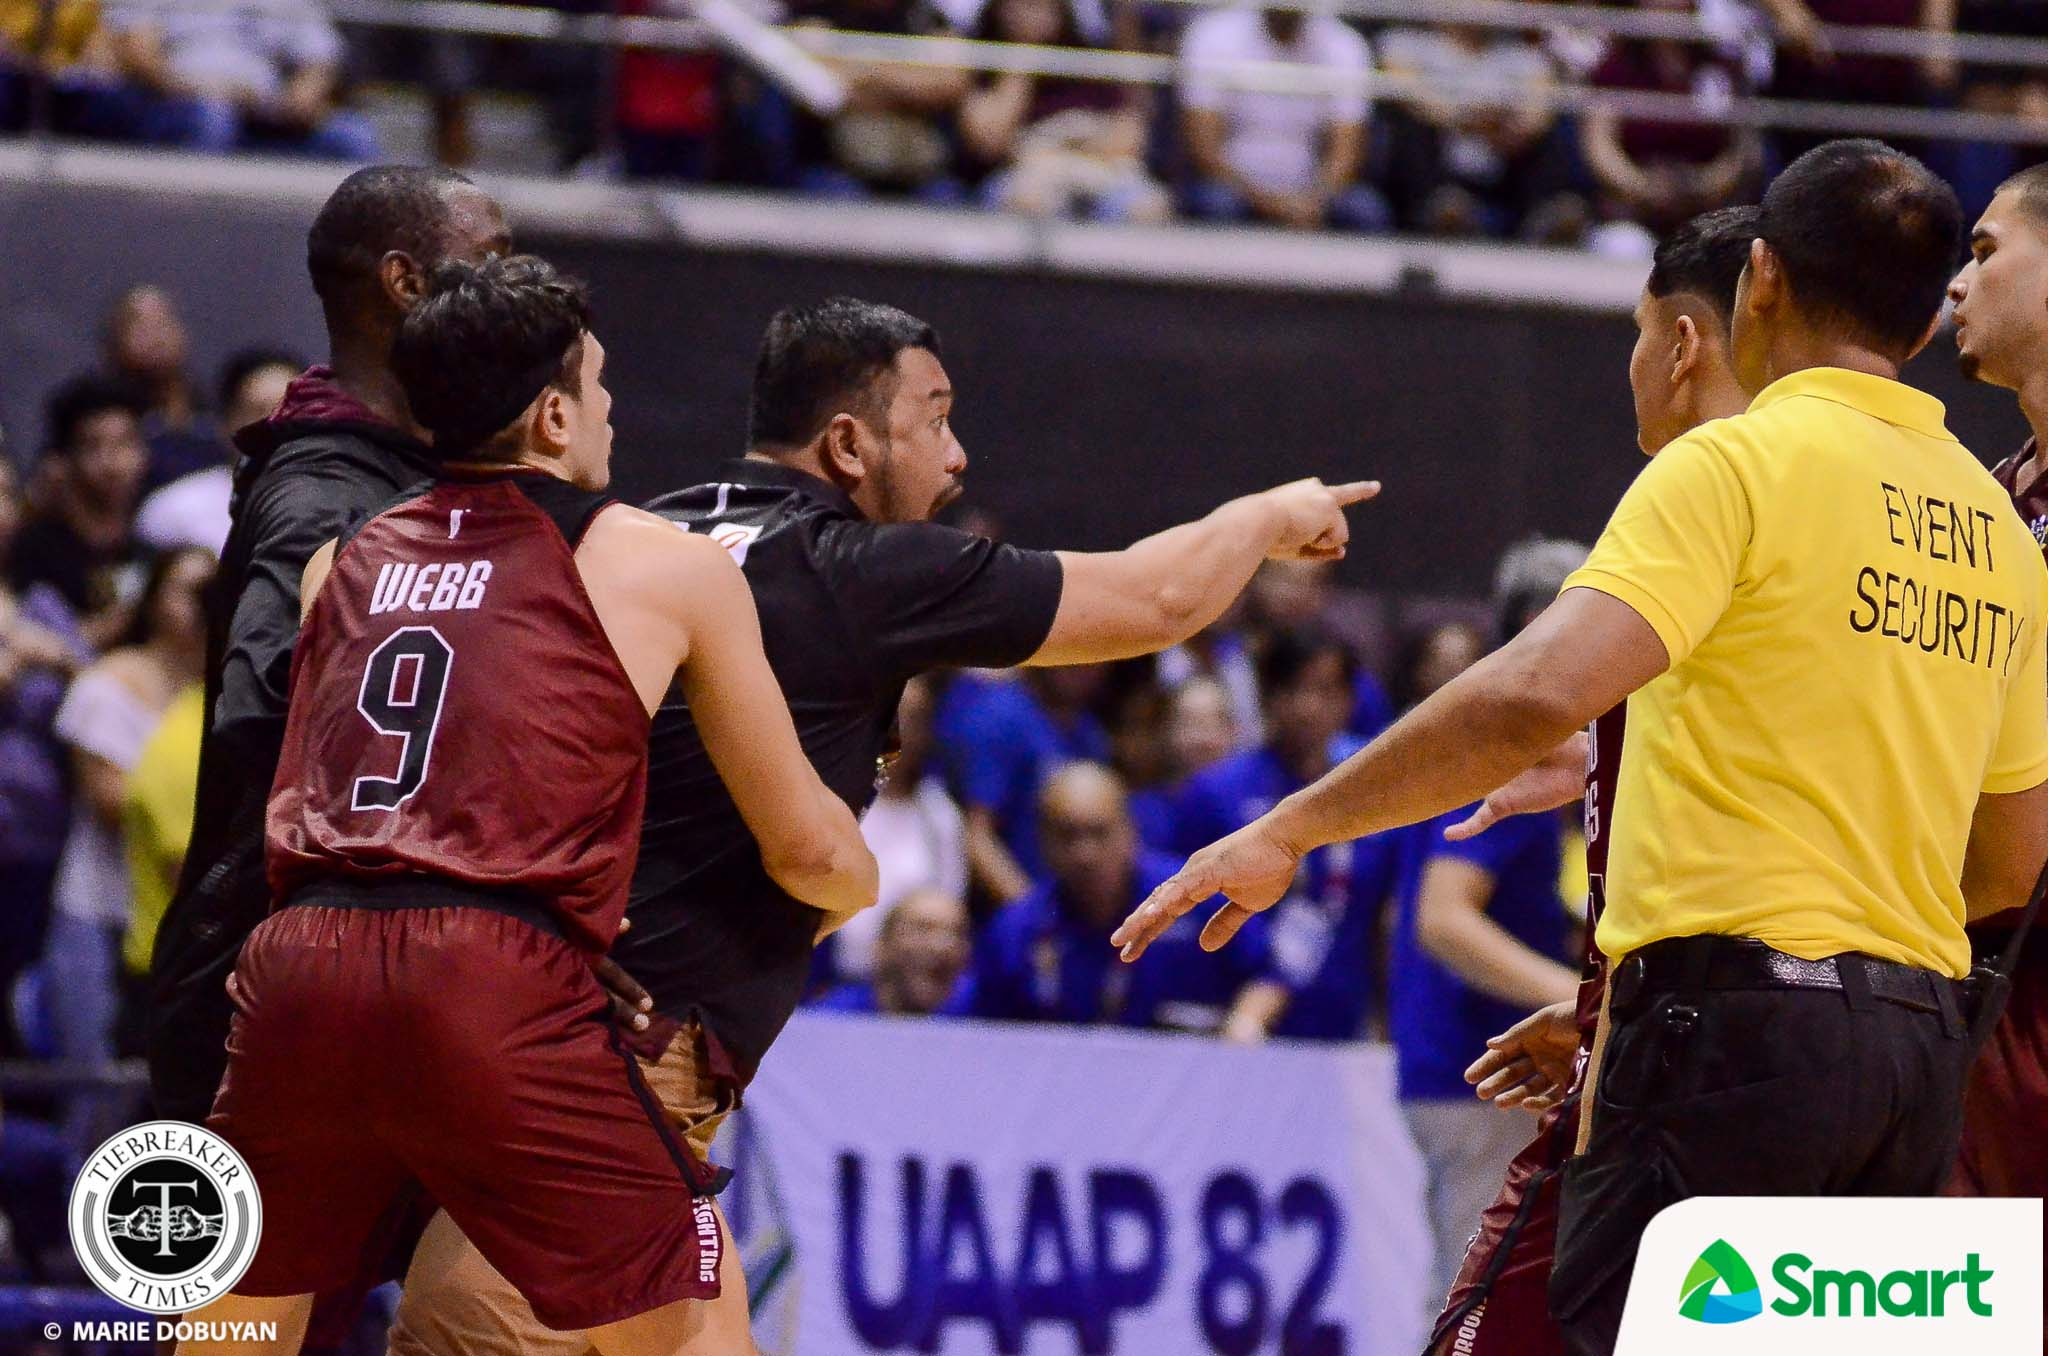 Tiebreaker Times Apologetic Bo Perasol says official targeted Akhuetie Basketball News UAAP UP  UP Men's Basketball UAAP Season 82 Men's Basketball UAAP Season 82 Bo Perasol